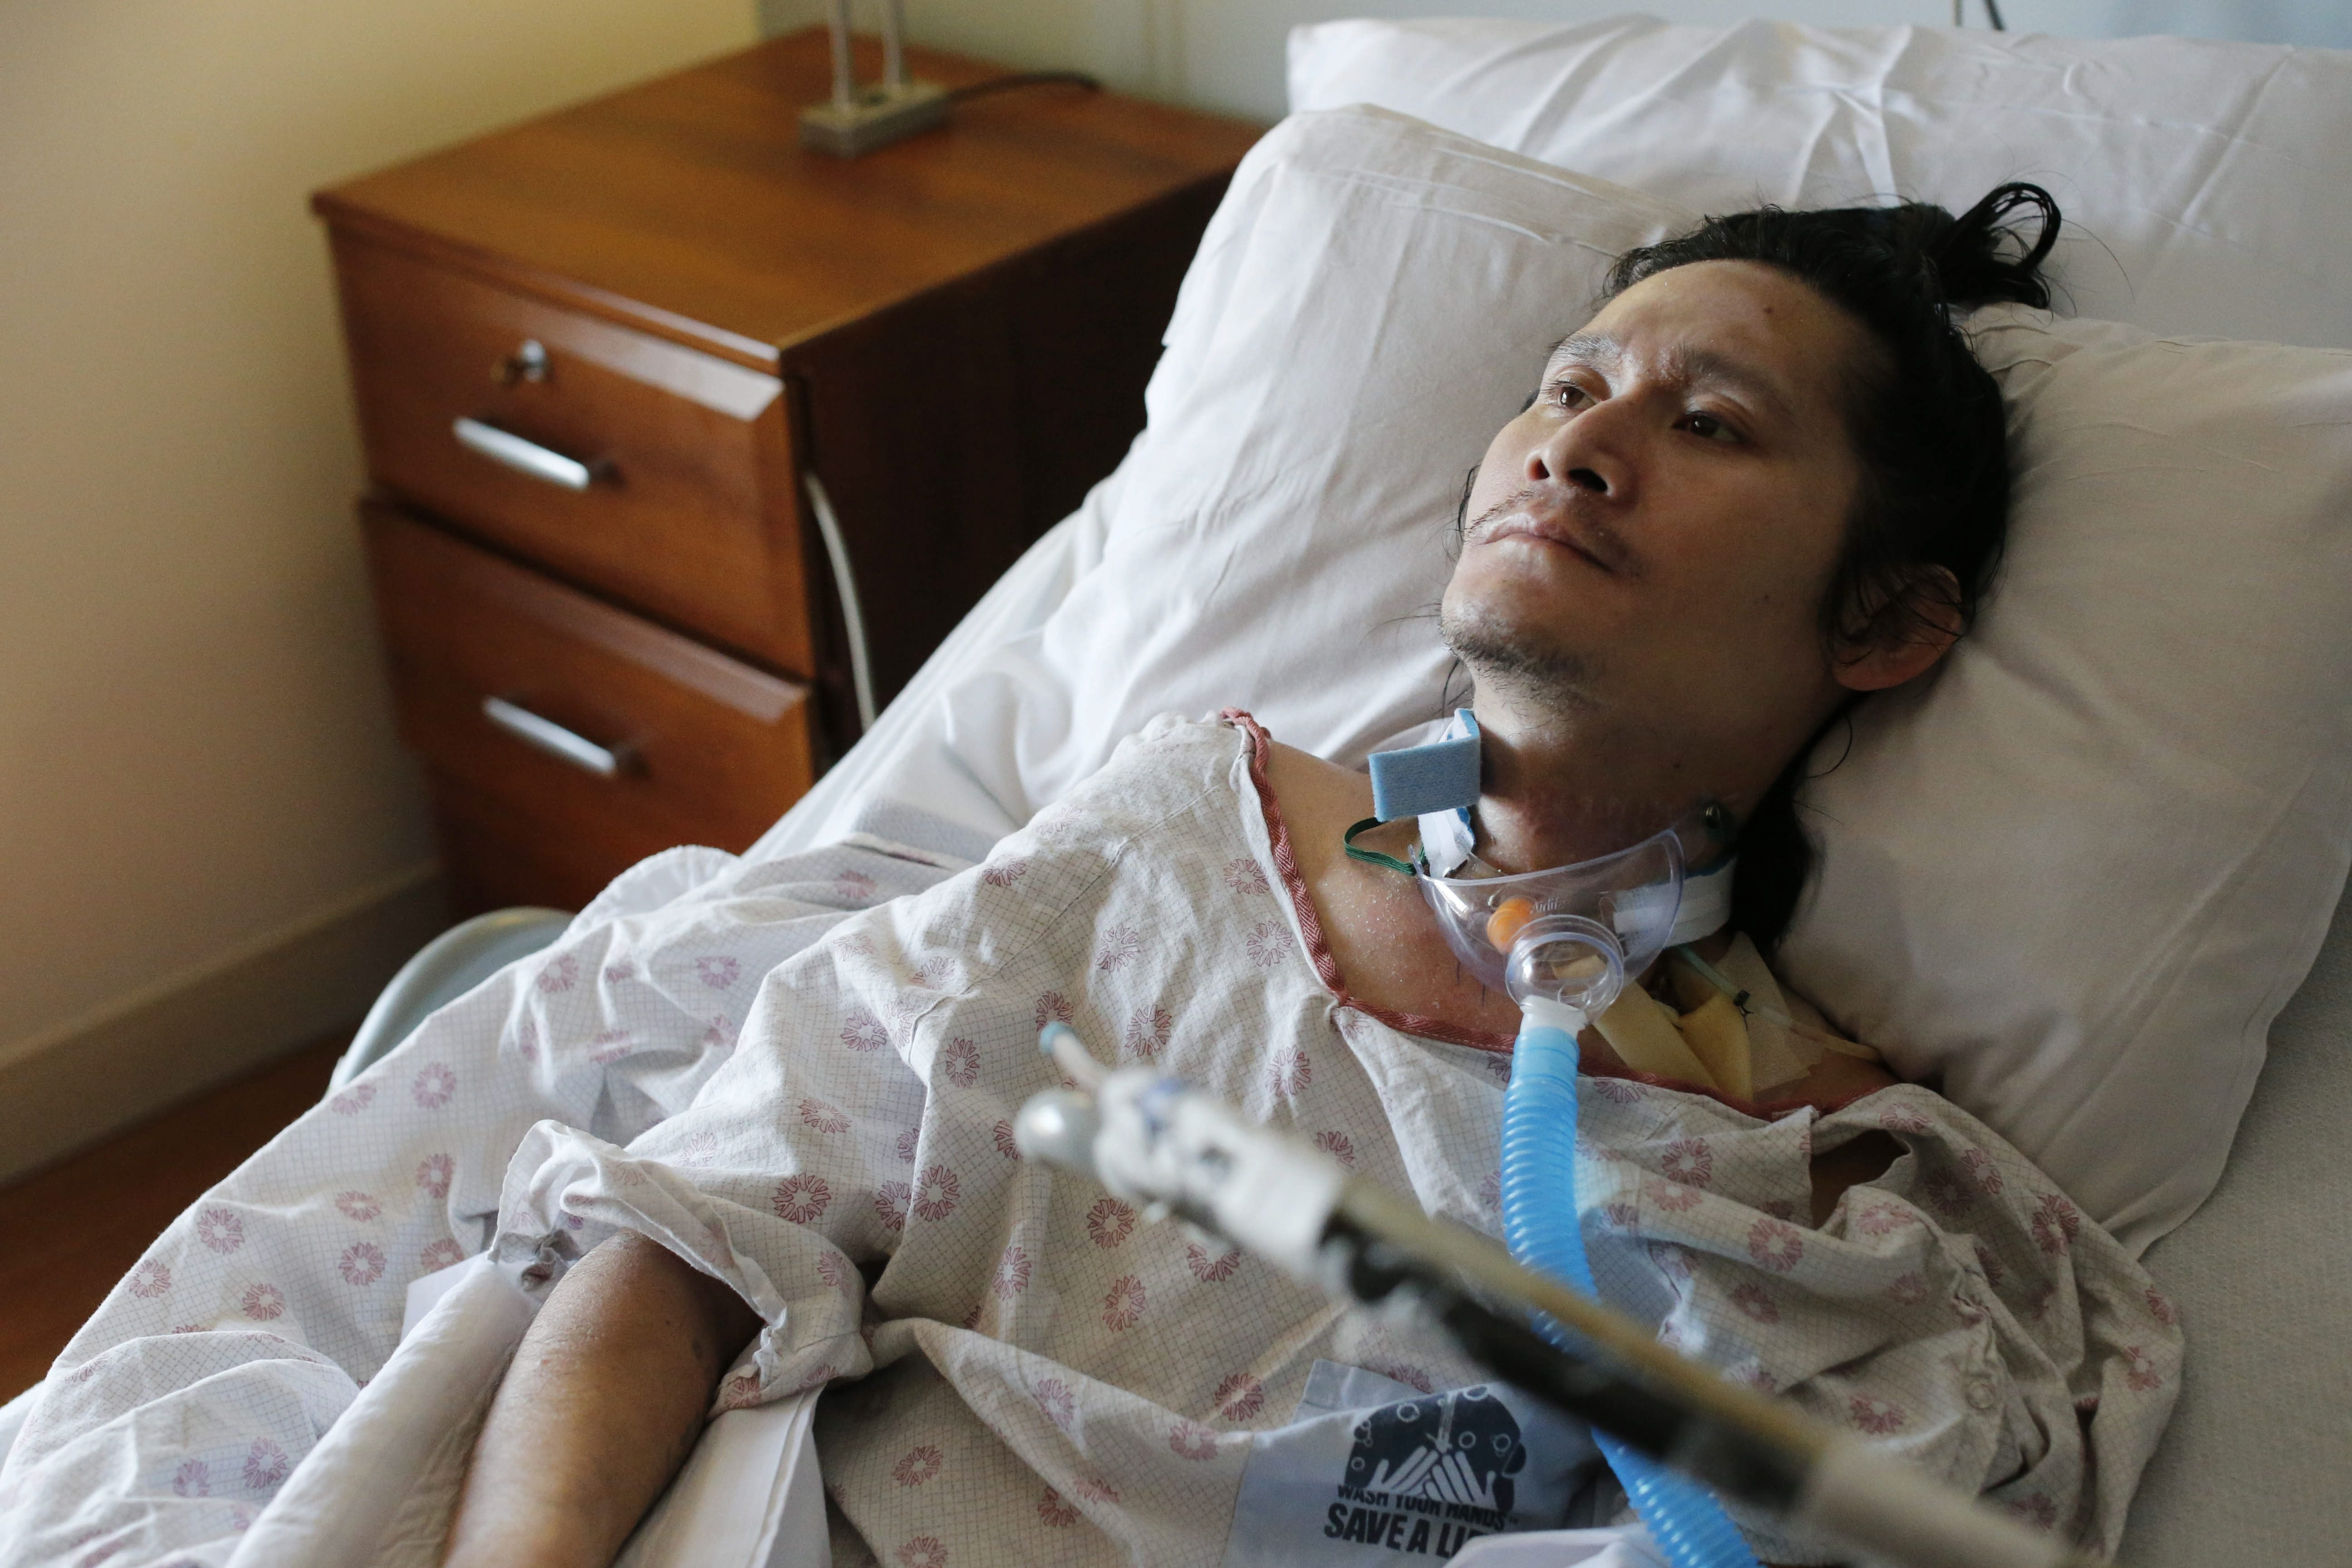 K'Paw Wah, an immigrant from Burma who is paralyzed after being beaten in a robbery/assault on the West Side last June, rests in his bed Saturday at the Terrace View Nursing Home.